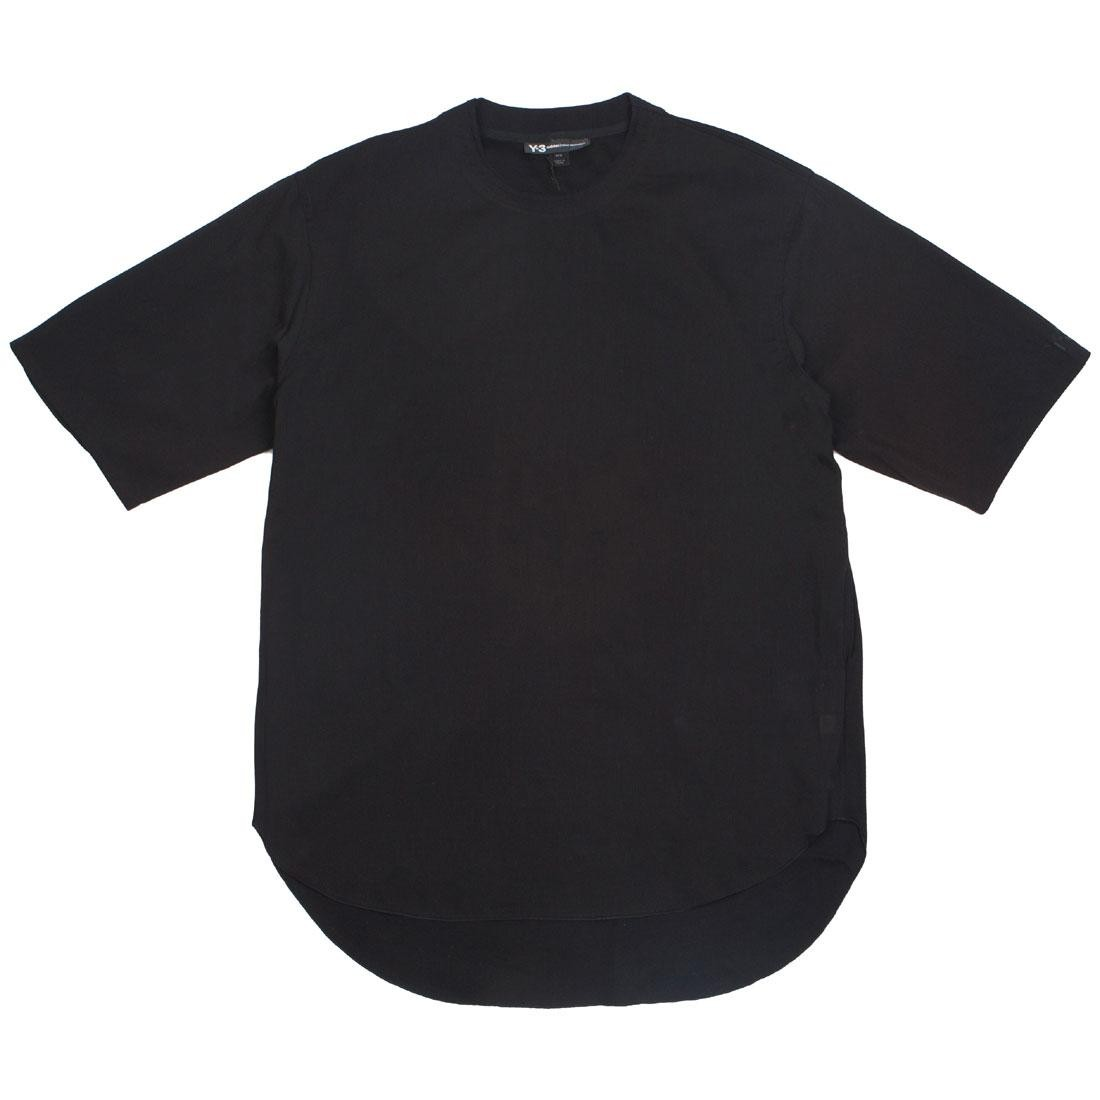 Adidas Y-3 Men Tencel Cotton Long Crew Short Sleeve Tee (black)